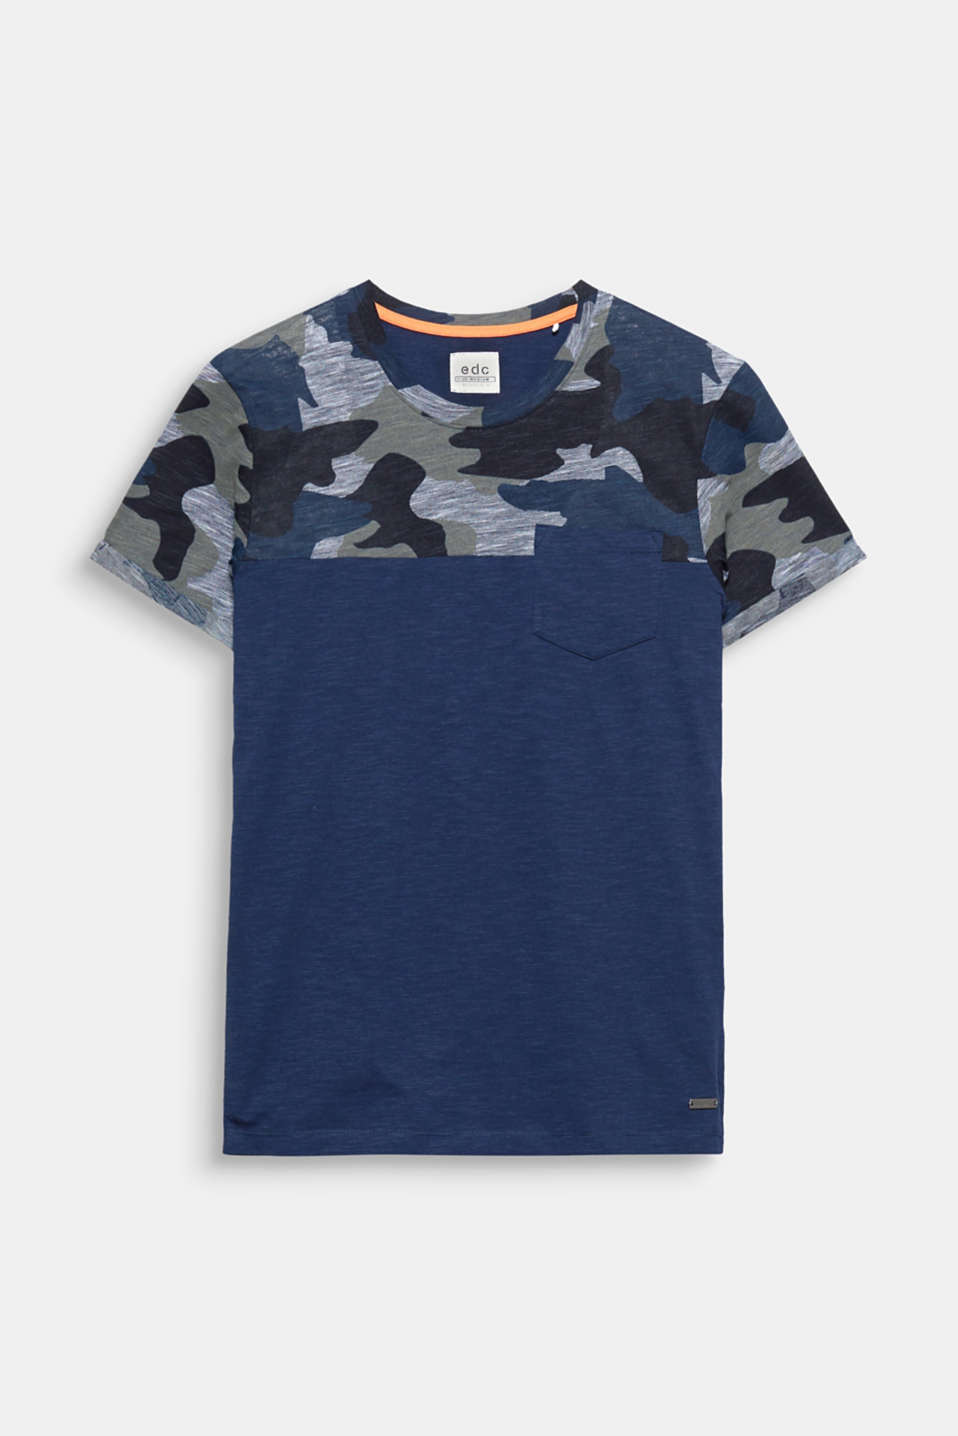 A timeless urban style thanks to the camouflage print: cotton blend T-shirt.